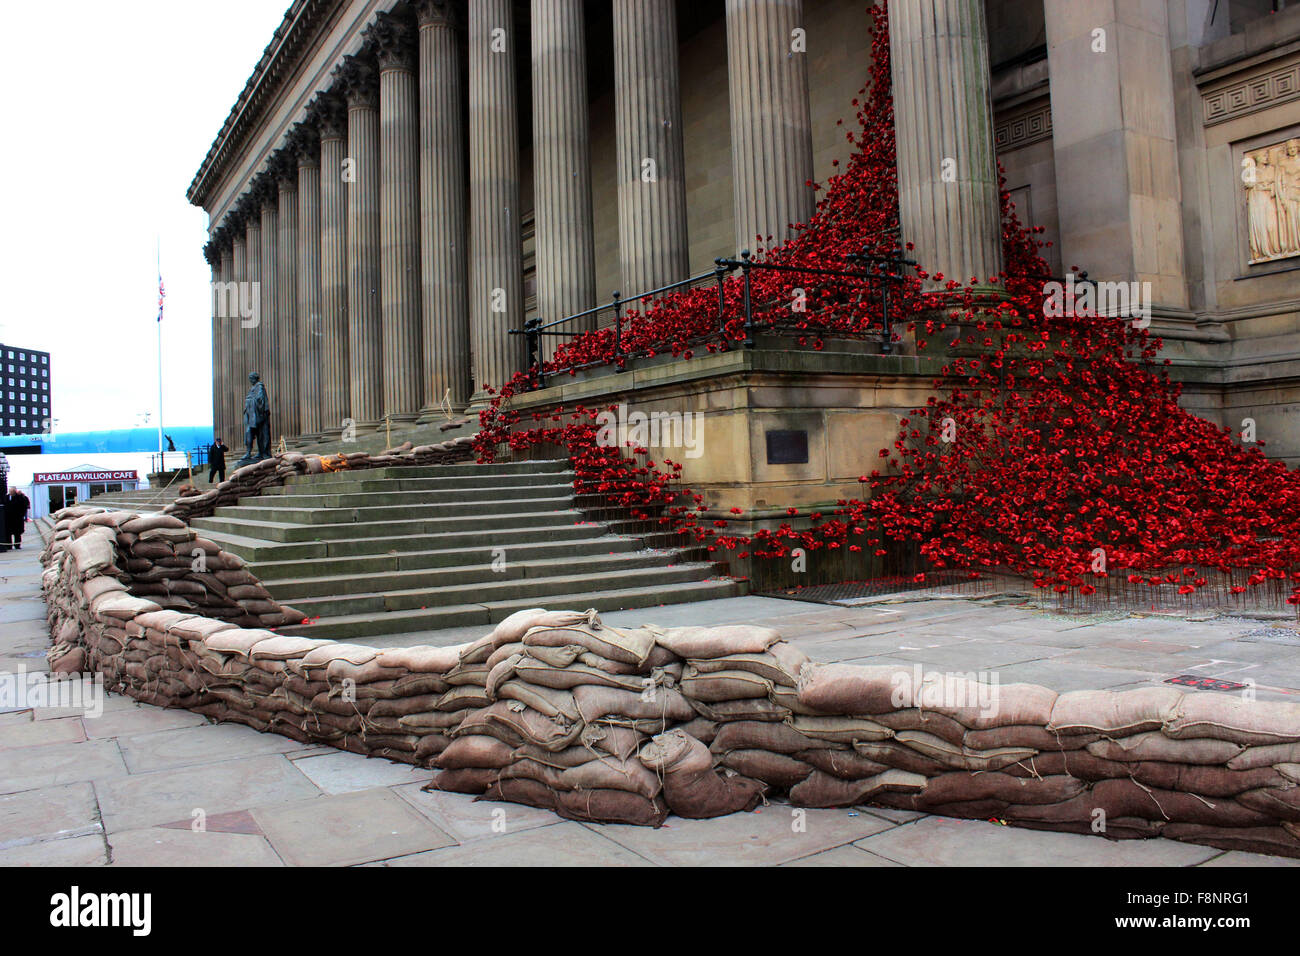 'Weeping Window' poppies at St George's Hall Liverpool - Stock Image